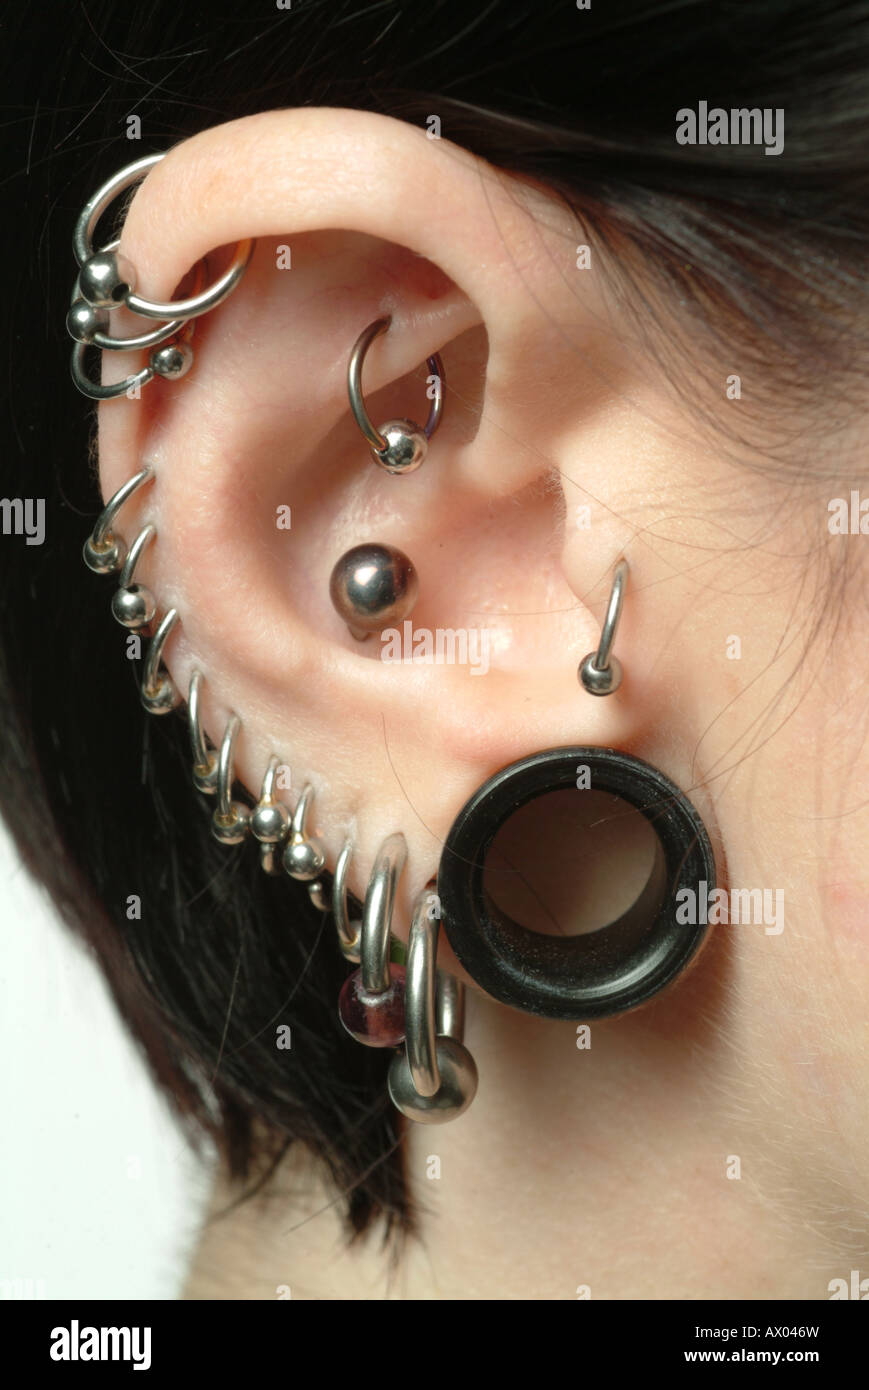 Close Up Of Ear With Multiple Piercings Stock Photo 16684944 Alamy